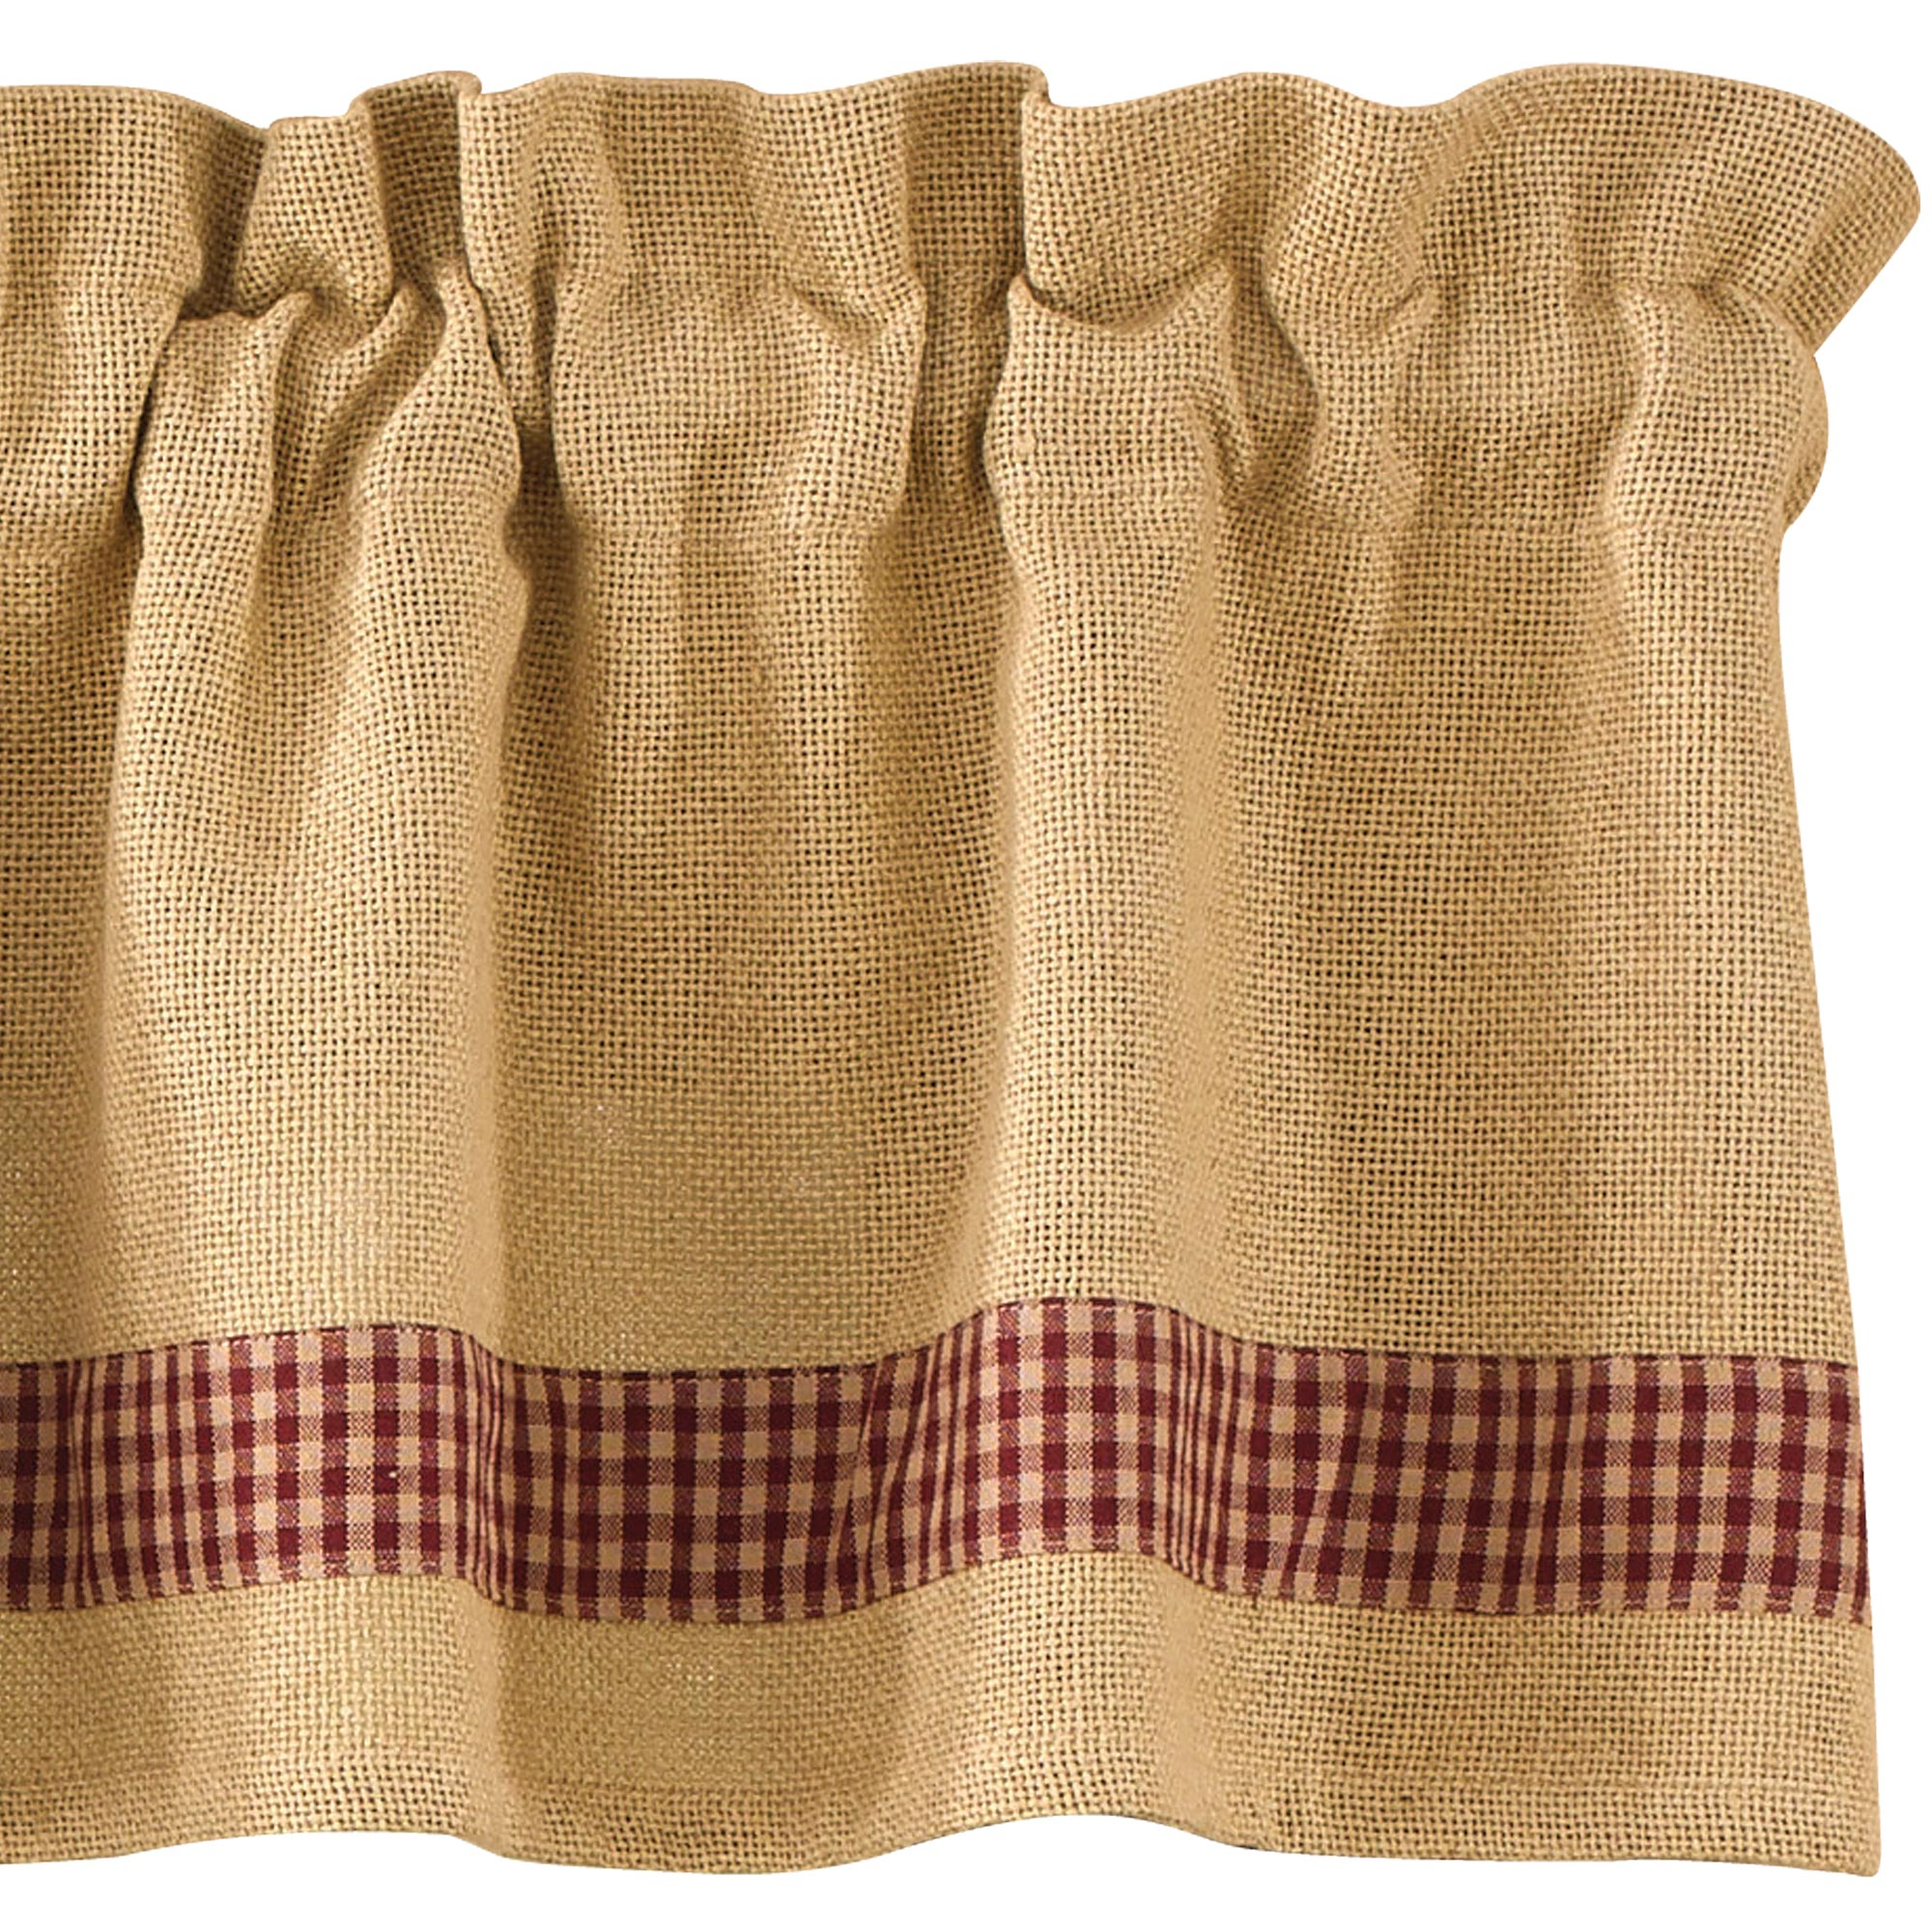 PKD-312-47K-Burlap-and-Wine-Check-Valance-LRG